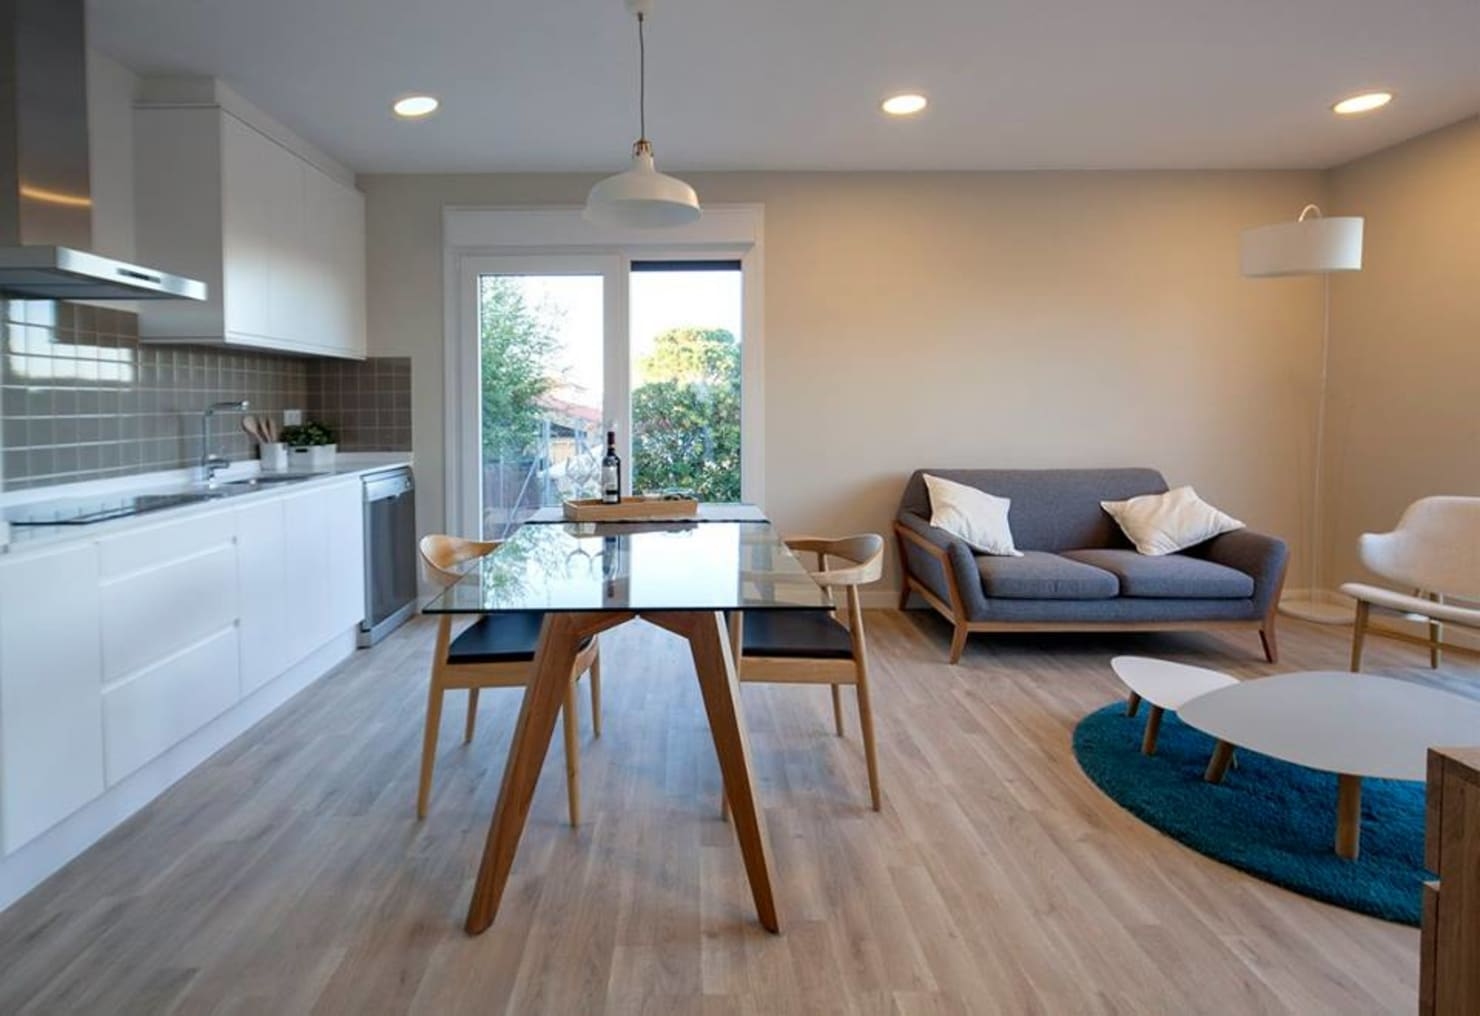 7 incredible open-plan layouts to copy